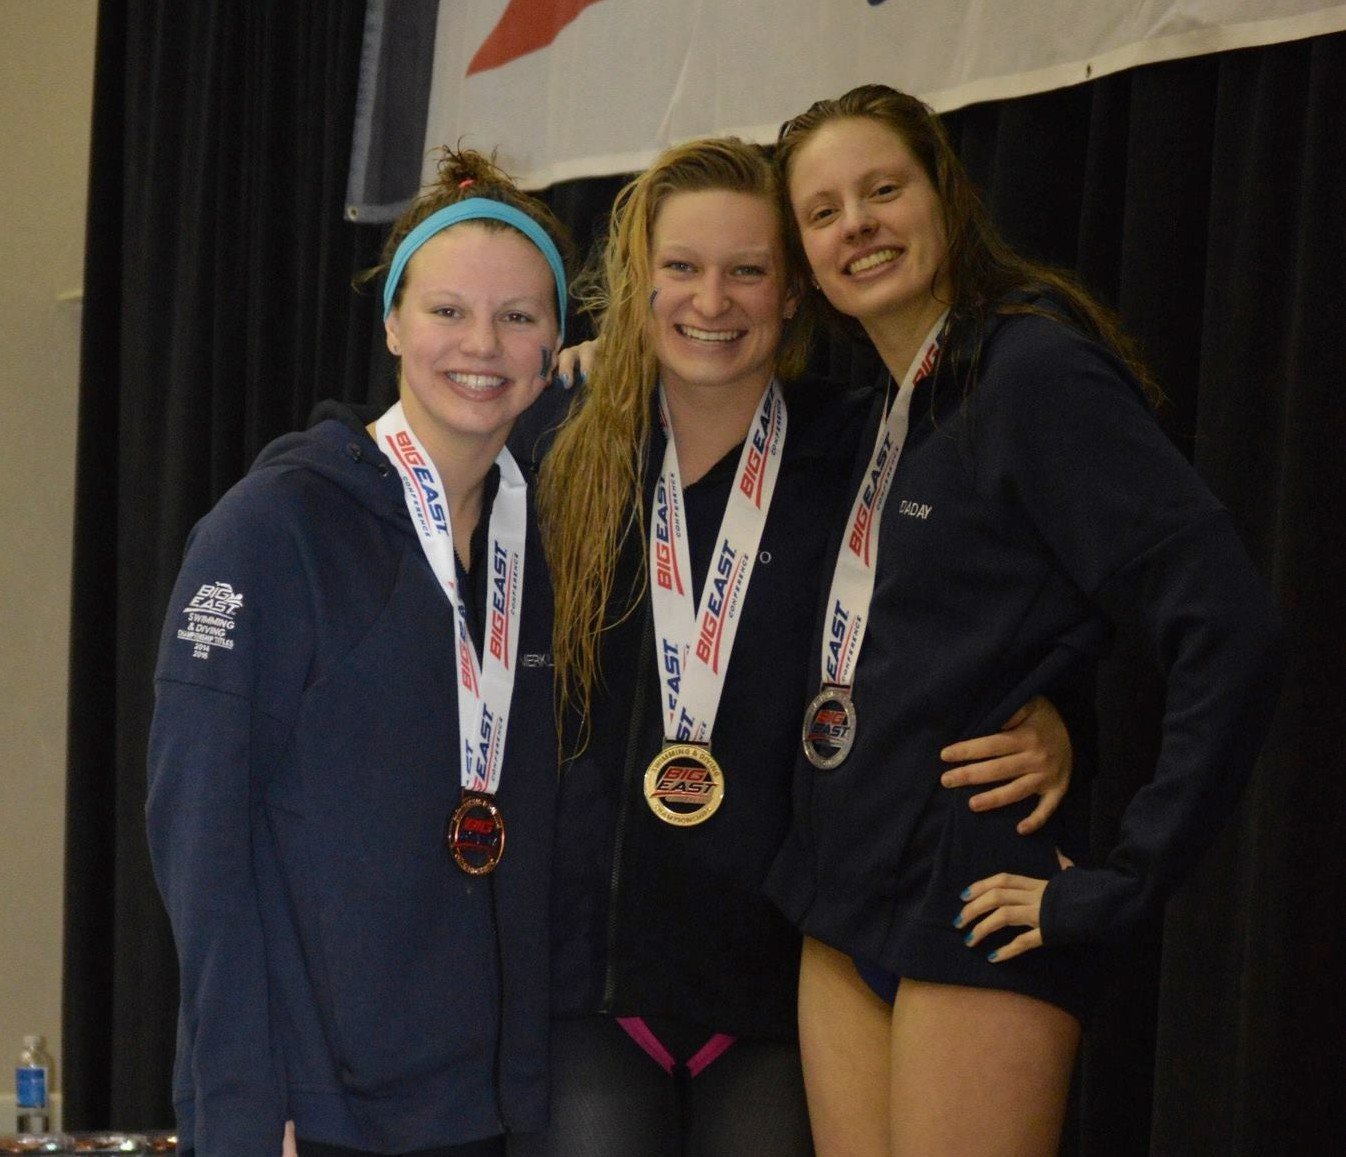 Merkle-Mayo-Daday-Big-East-Podium-2016